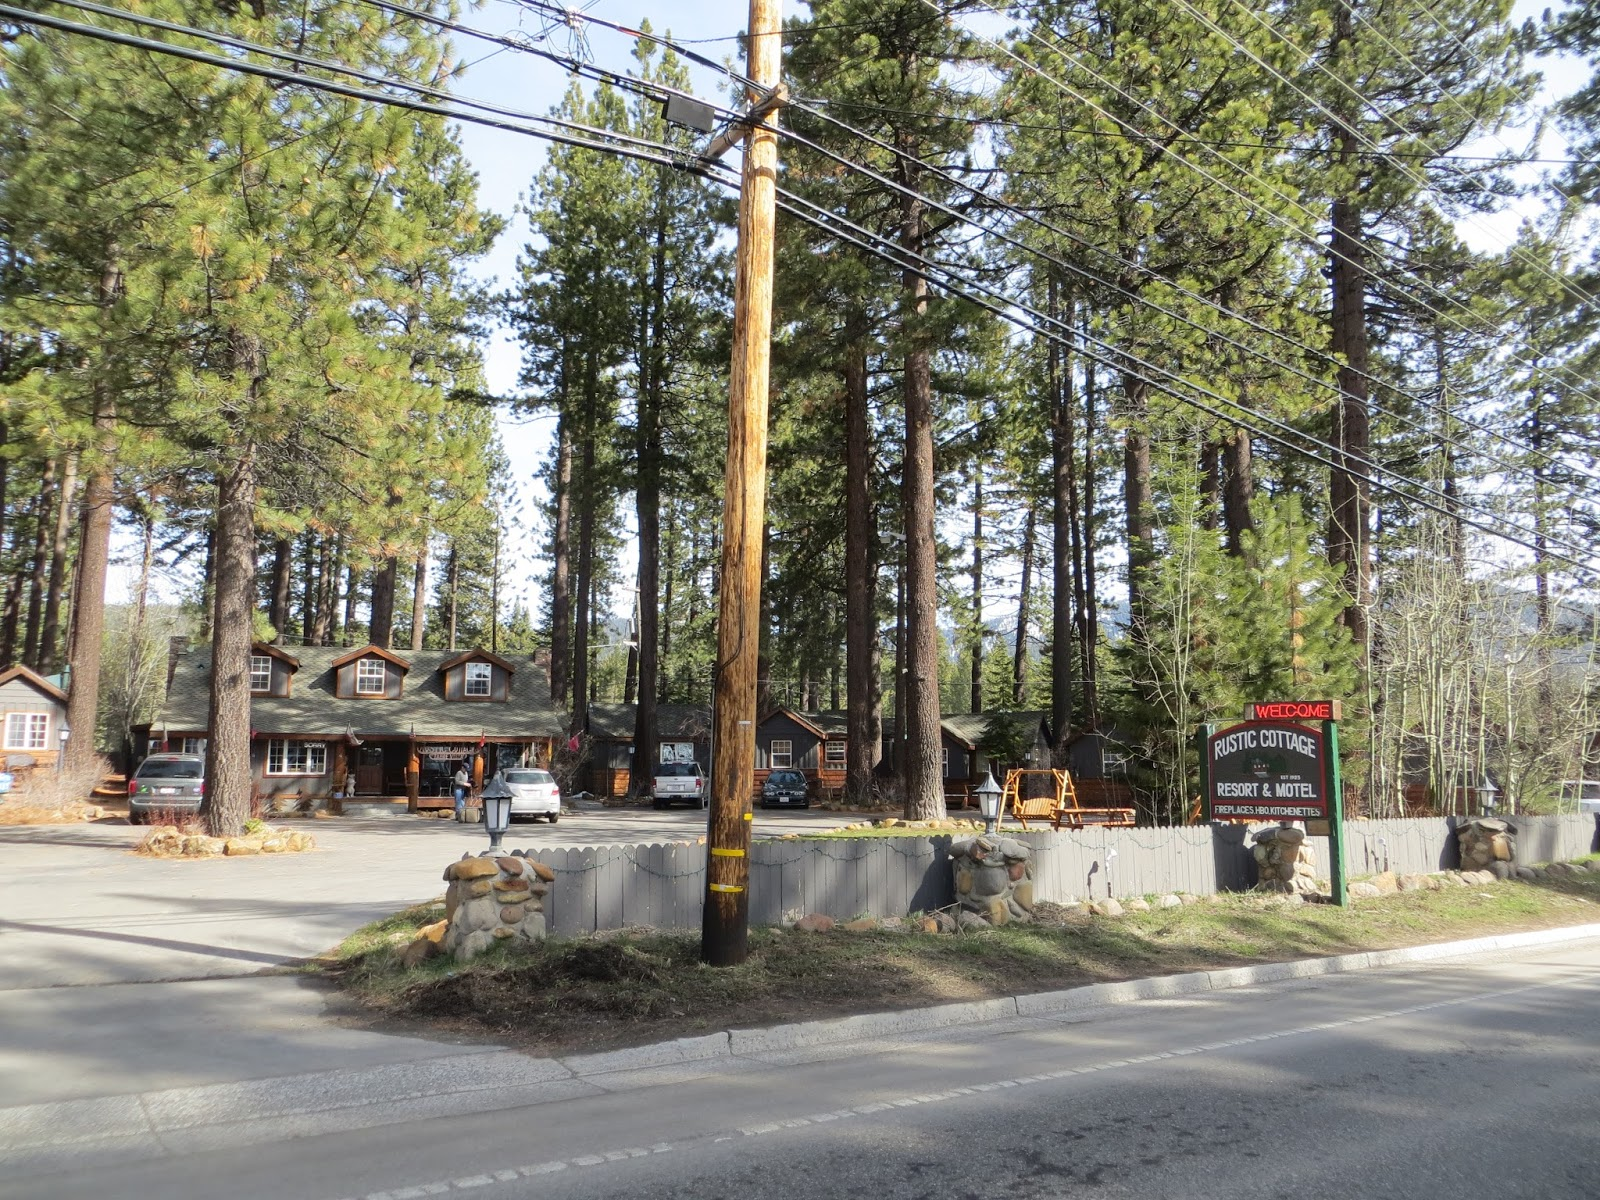 tahoe vista single guys For sale - 1293 jester court, tahoe vista, ca - $799,000 view details, map and photos of this single family property with 3 bedrooms and 3 total baths mls# 20181043.